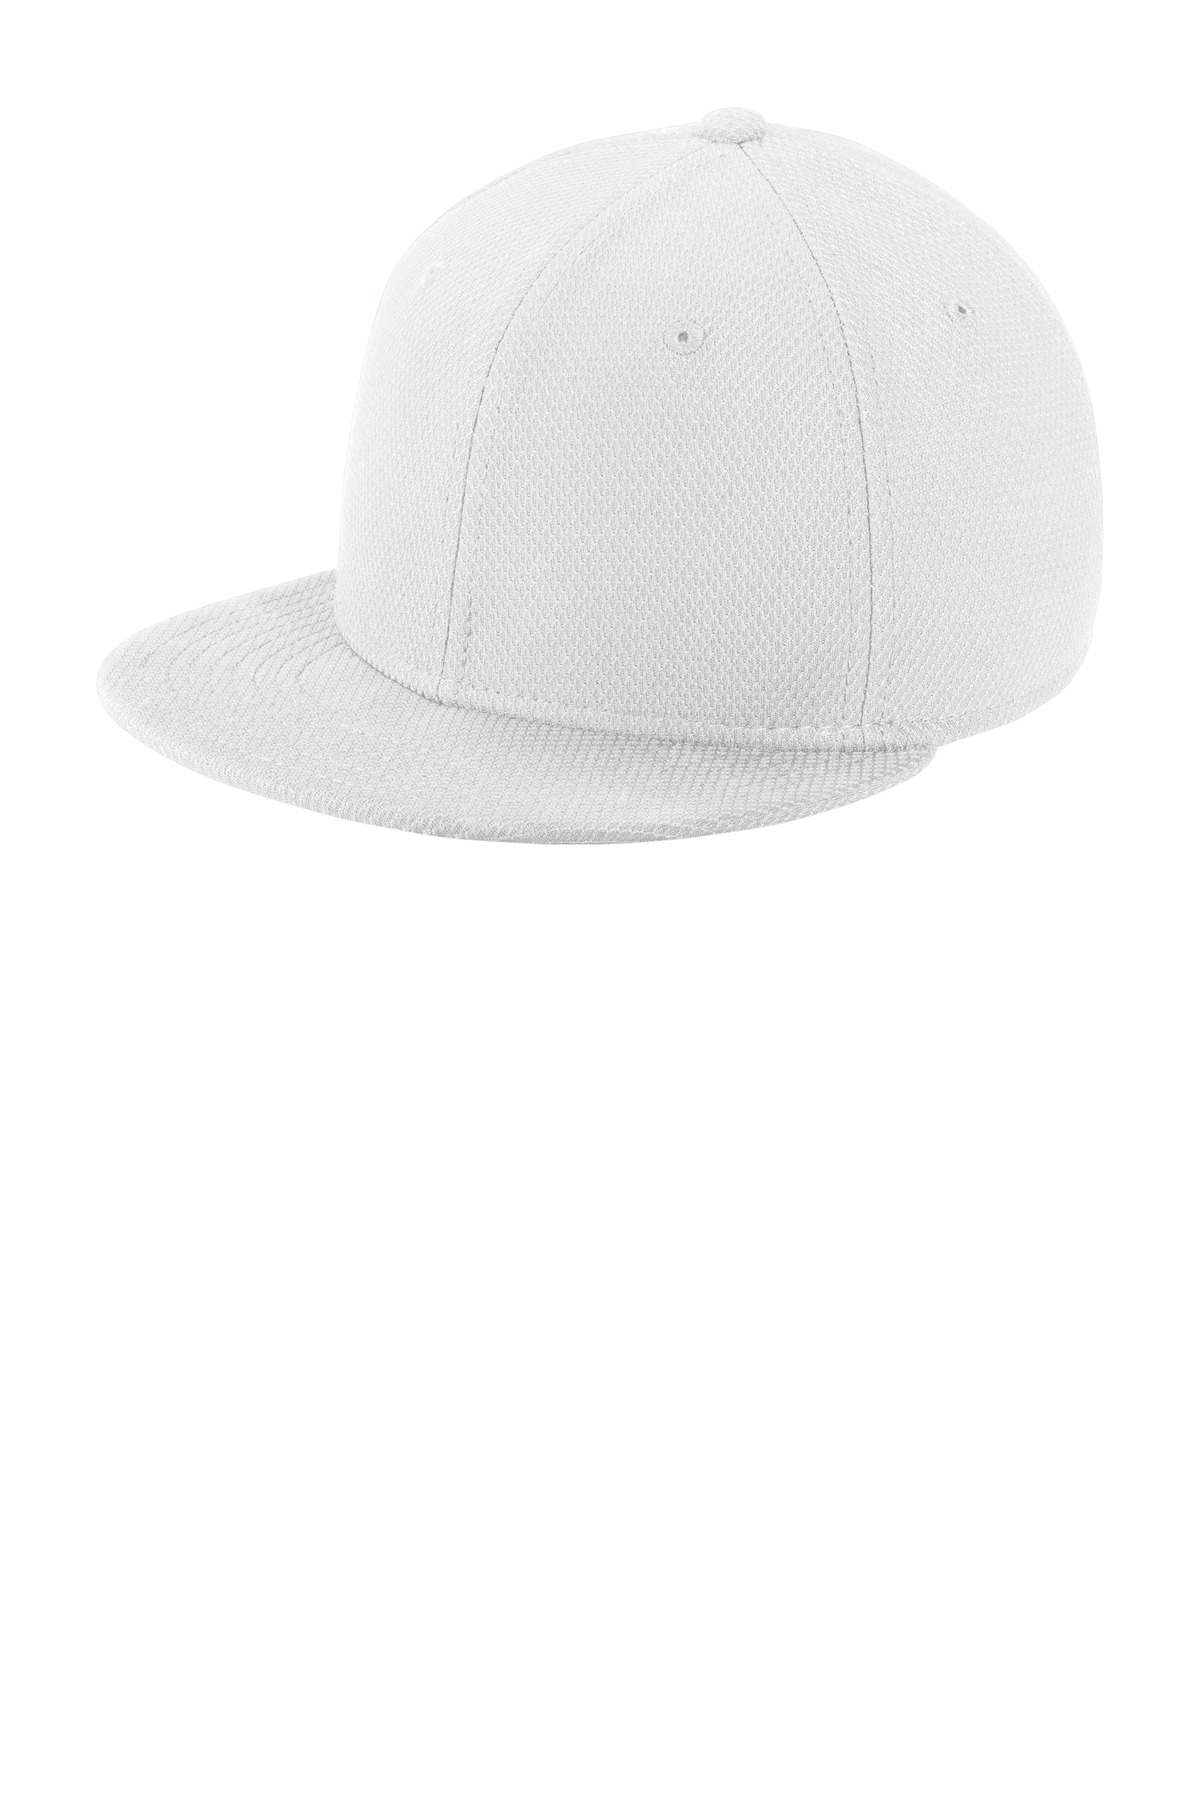 New Era  ®  Youth Original Fit Diamond Era Flat Bill Snapback Cap. NE304 - White